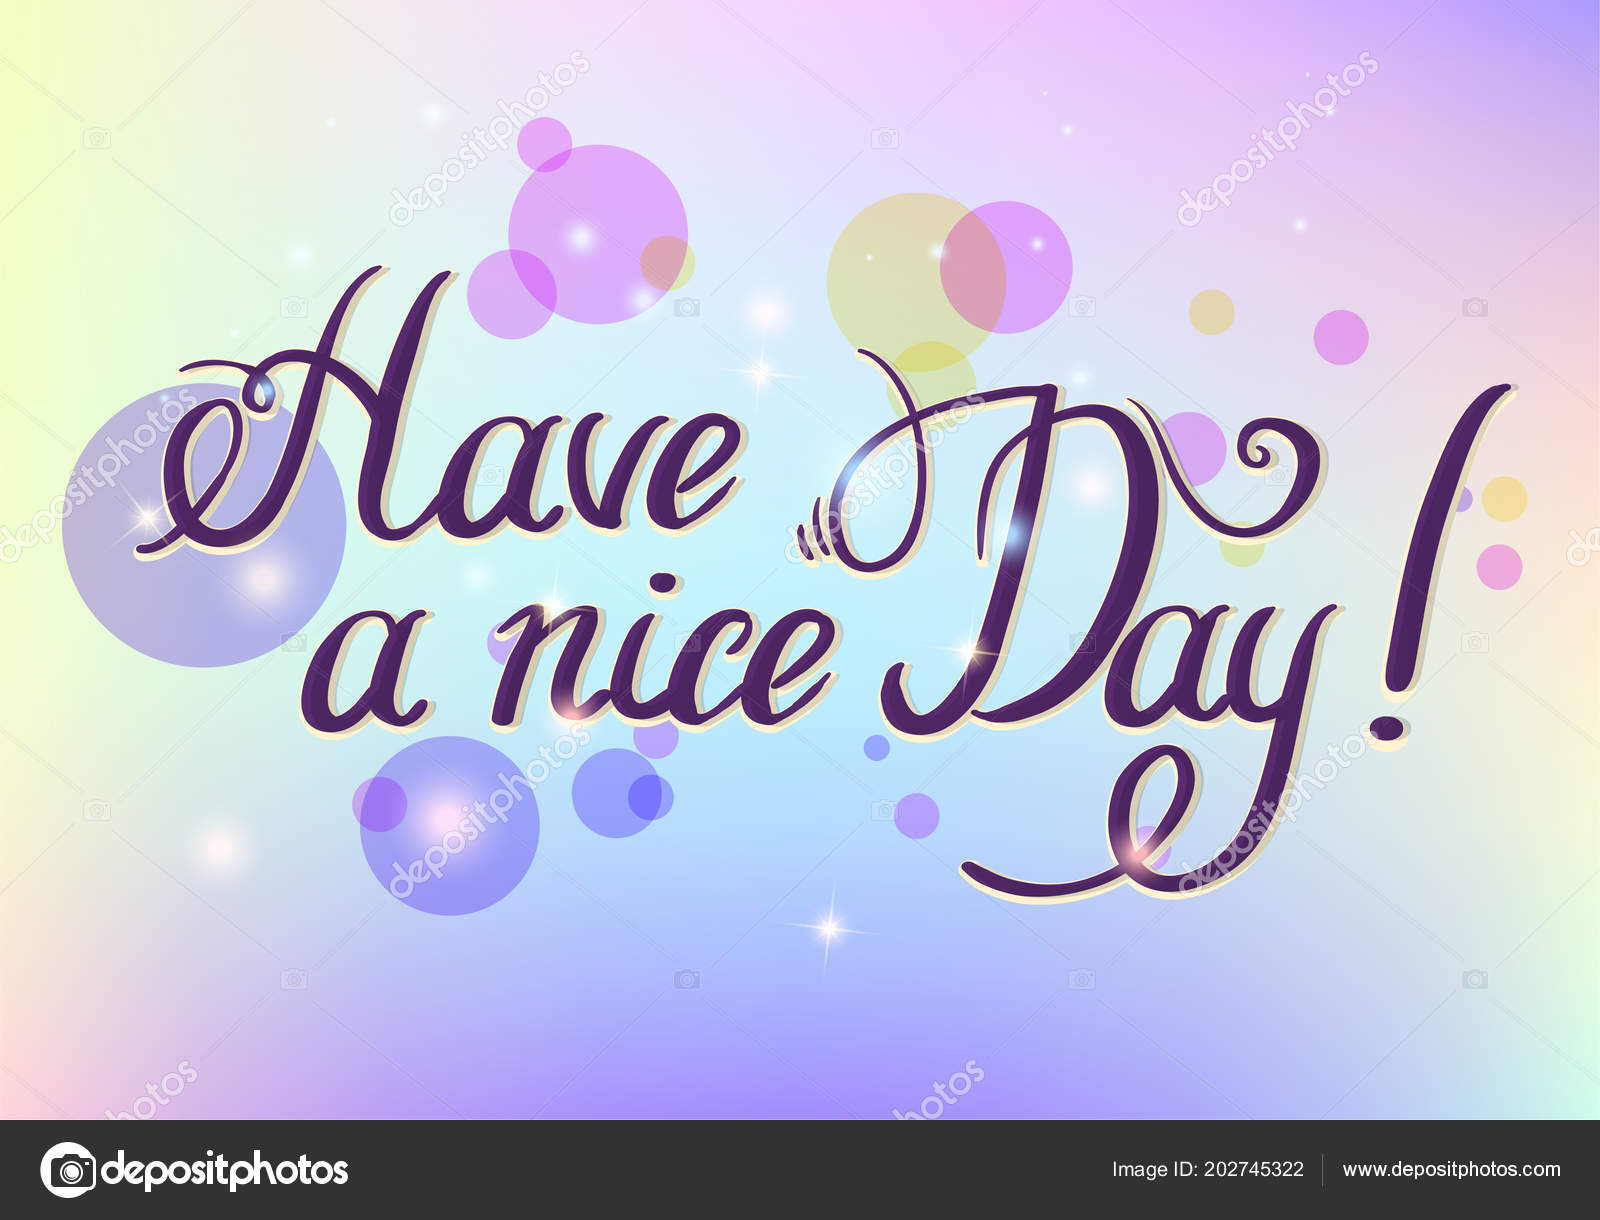 Have a nice day hand drawn lettering isolated on white background have a nice day hand drawn lettering isolated on white background design element for poster greeting card banner vector illustration holographic m4hsunfo